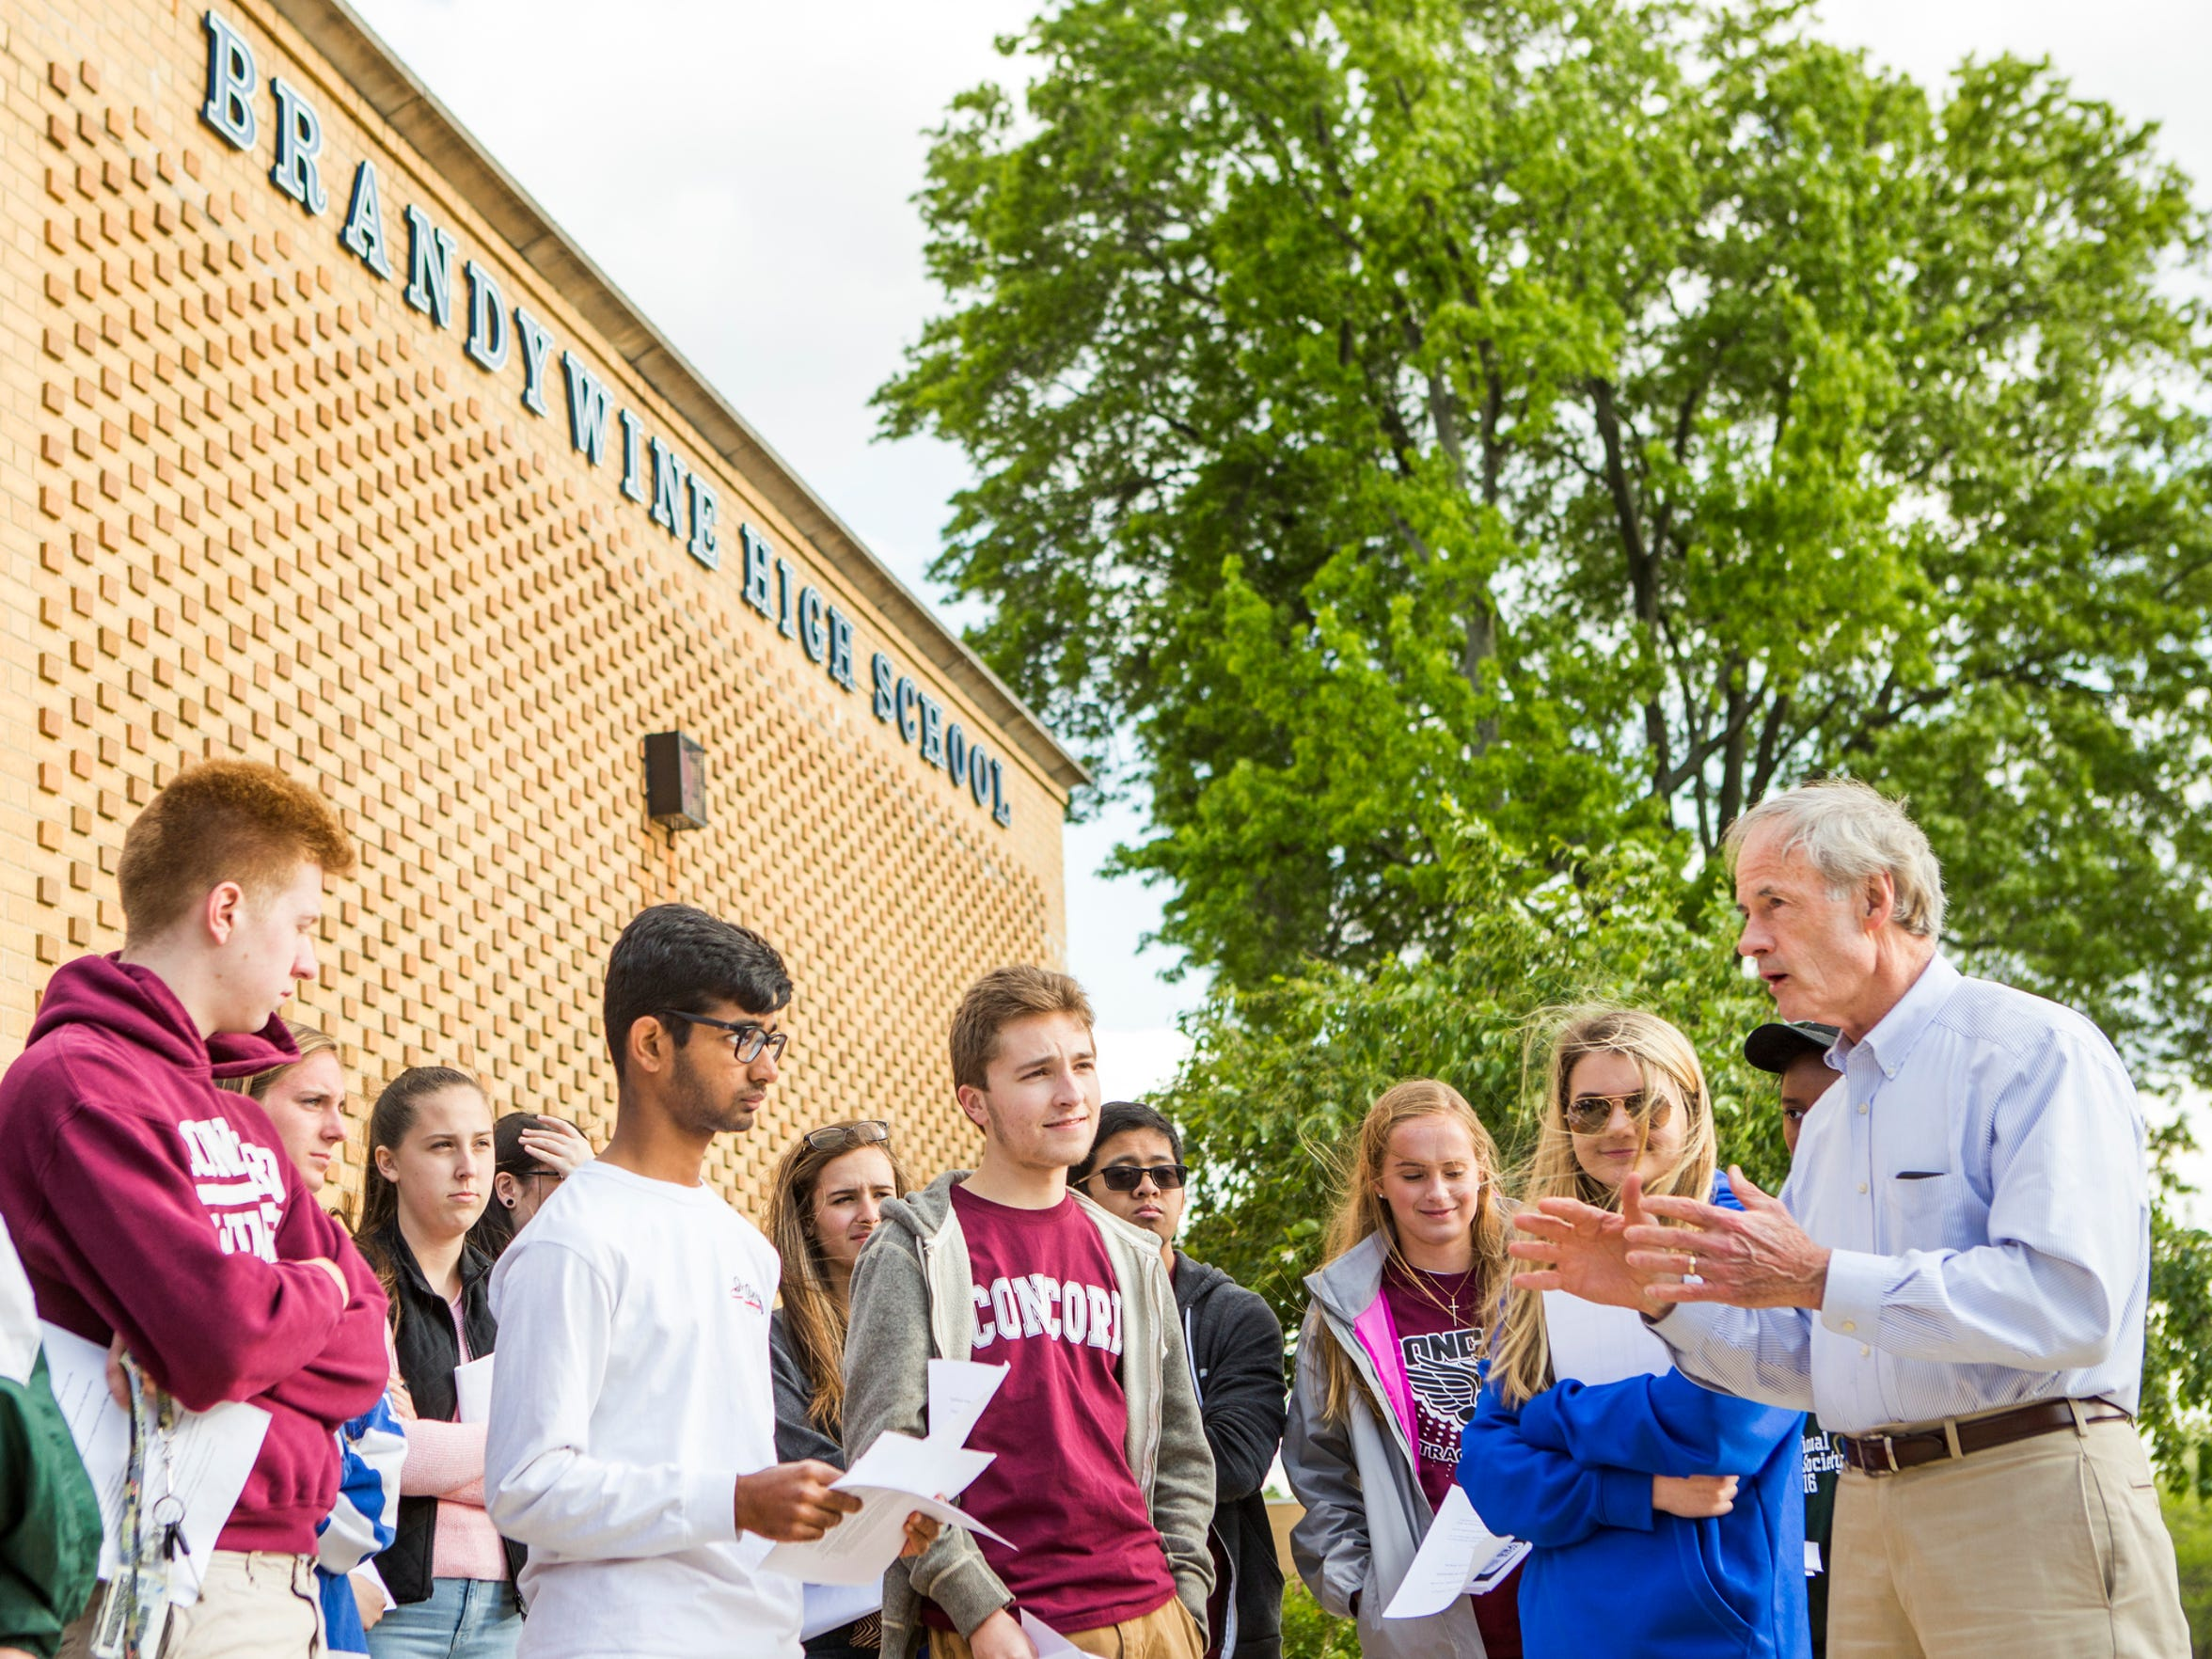 U.S. Sen. Tom Carper speaks to students outside Brandywine High School before they leave to canvass the area in support of a referendum on the Brandywine School District on Sunday afternoon.